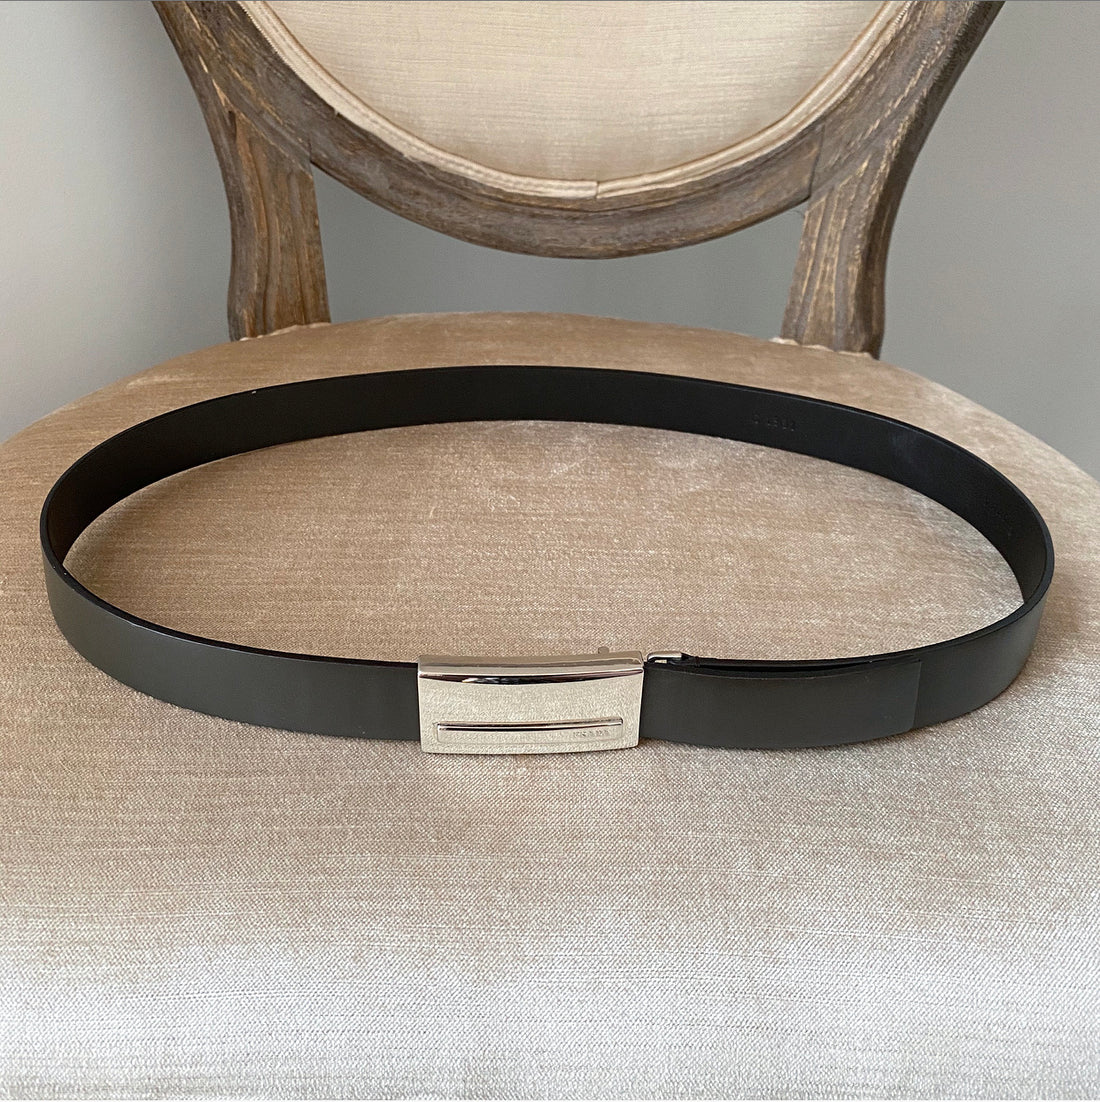 Prada Circa early 2000's Brown Leather Square Buckle Belt - 75 / 30